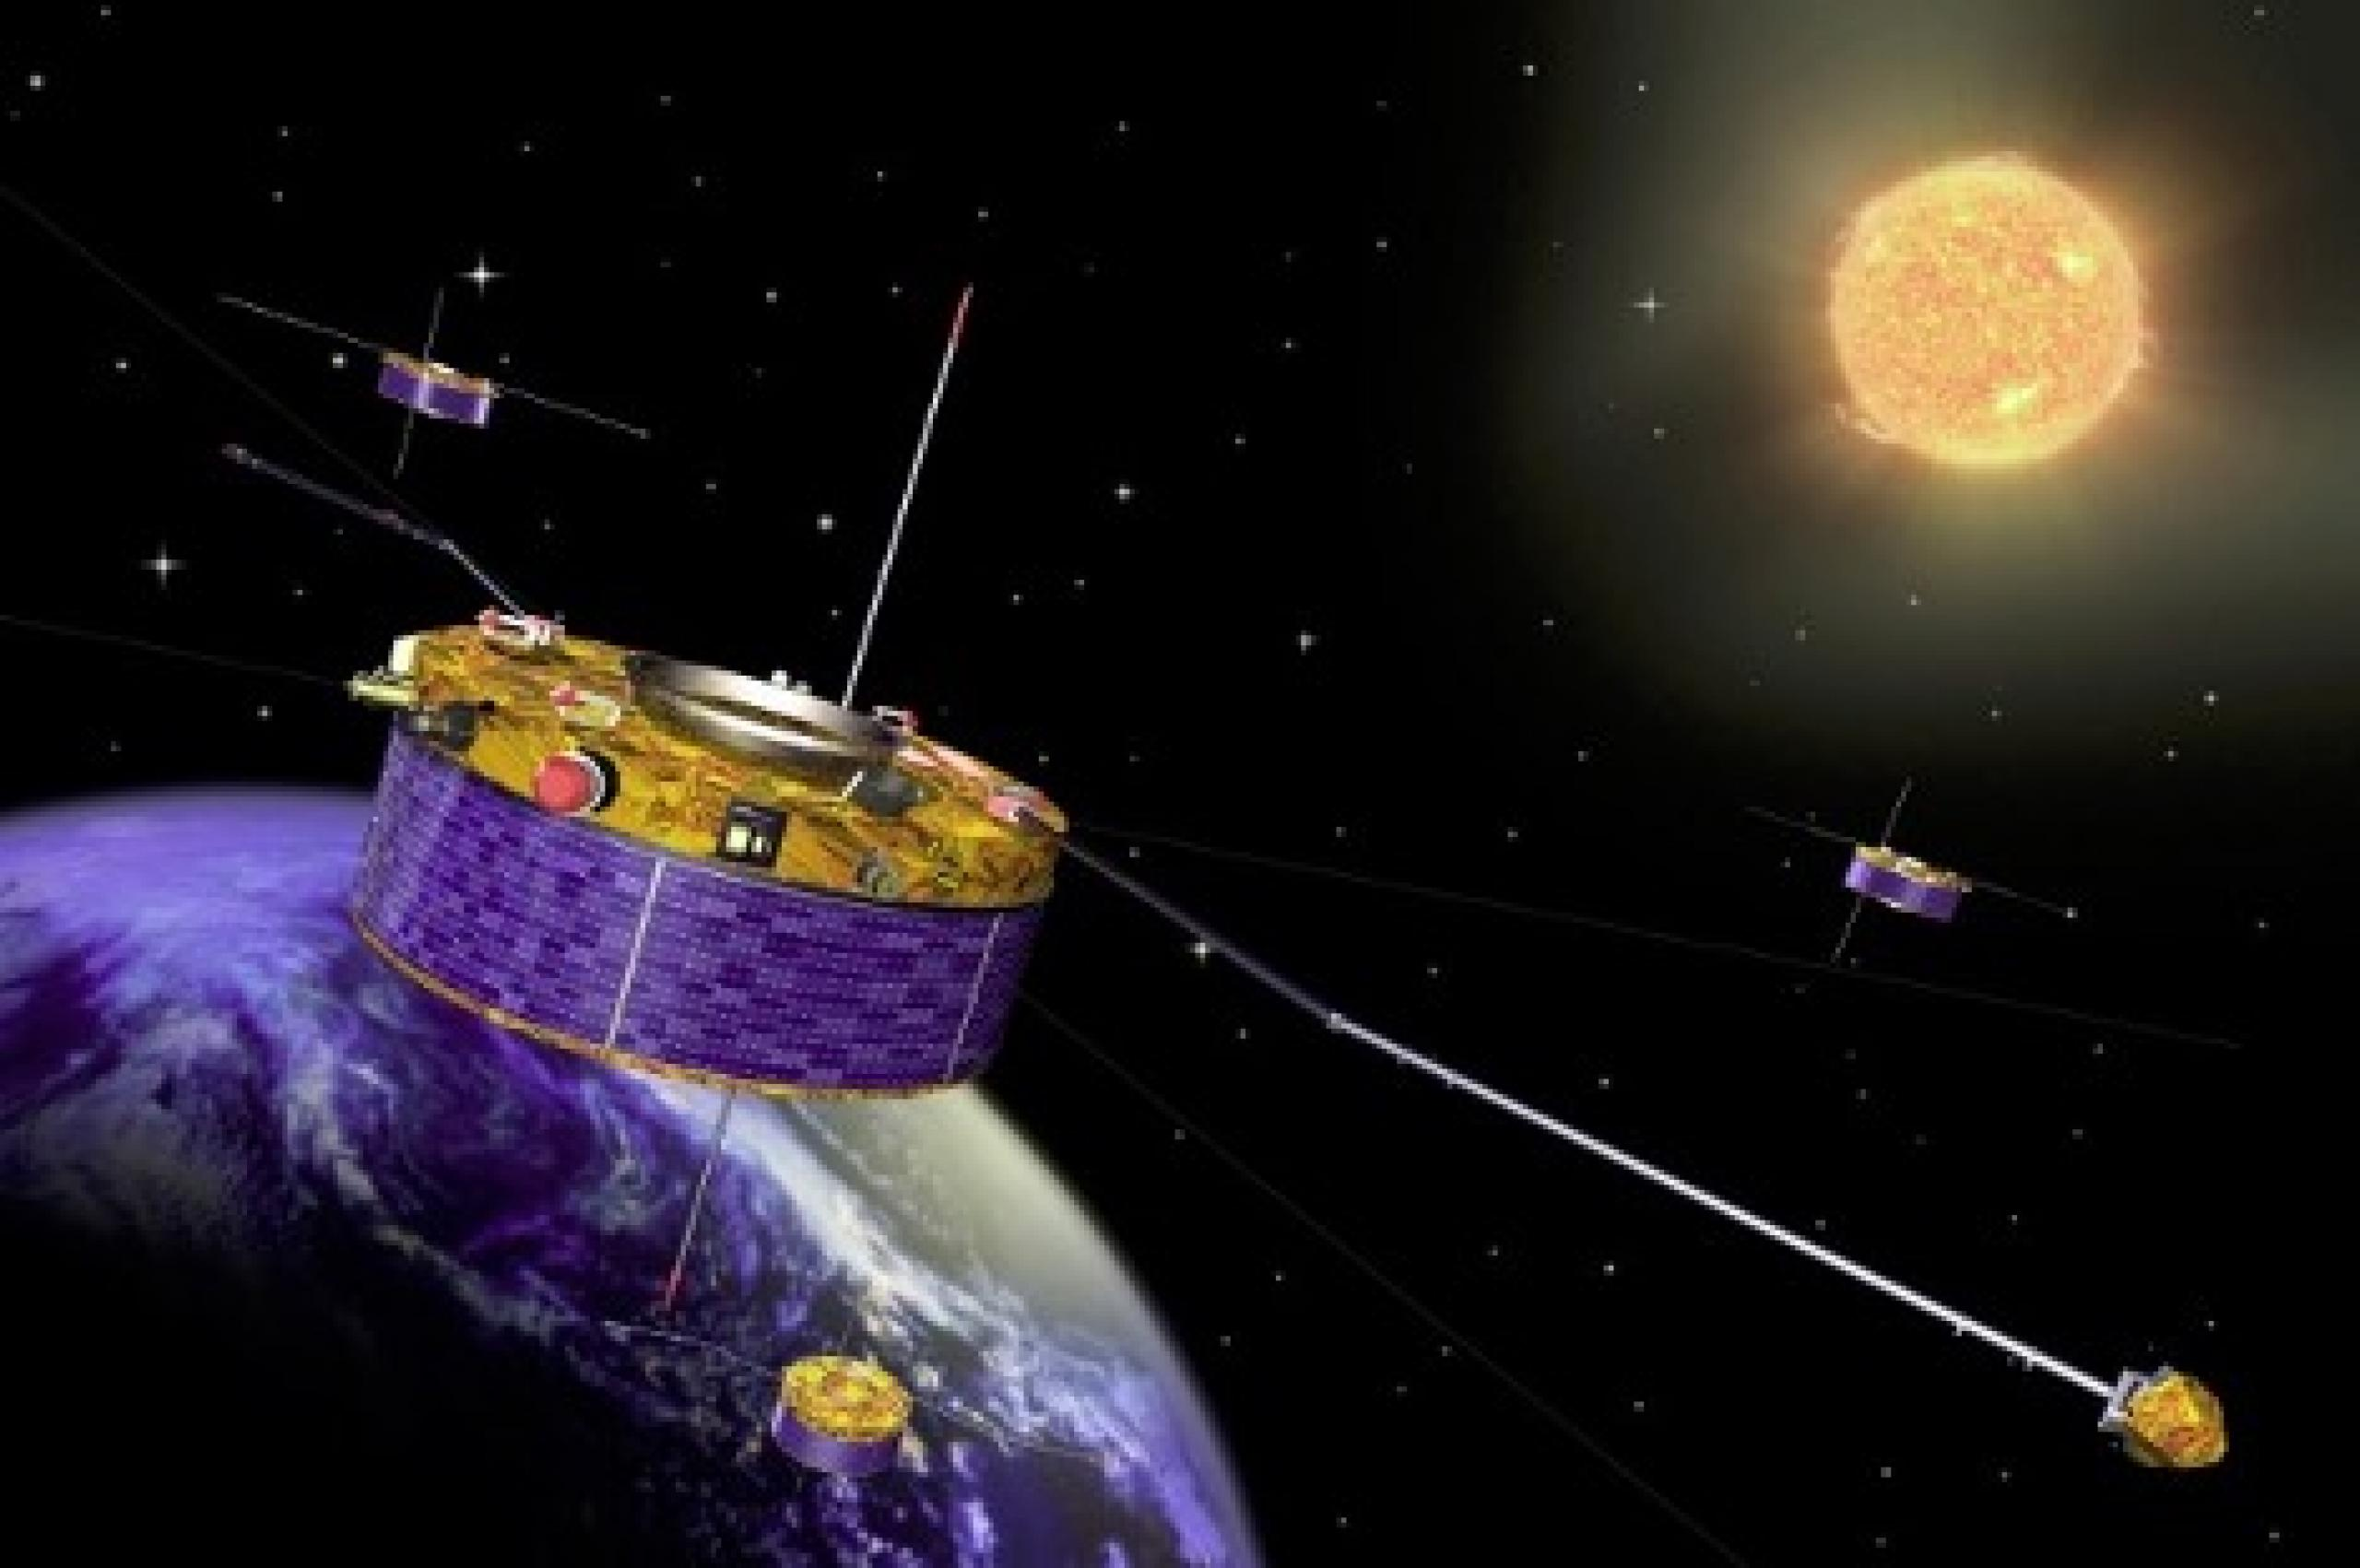 Artist concept of satellite in orbit with the sun in the background